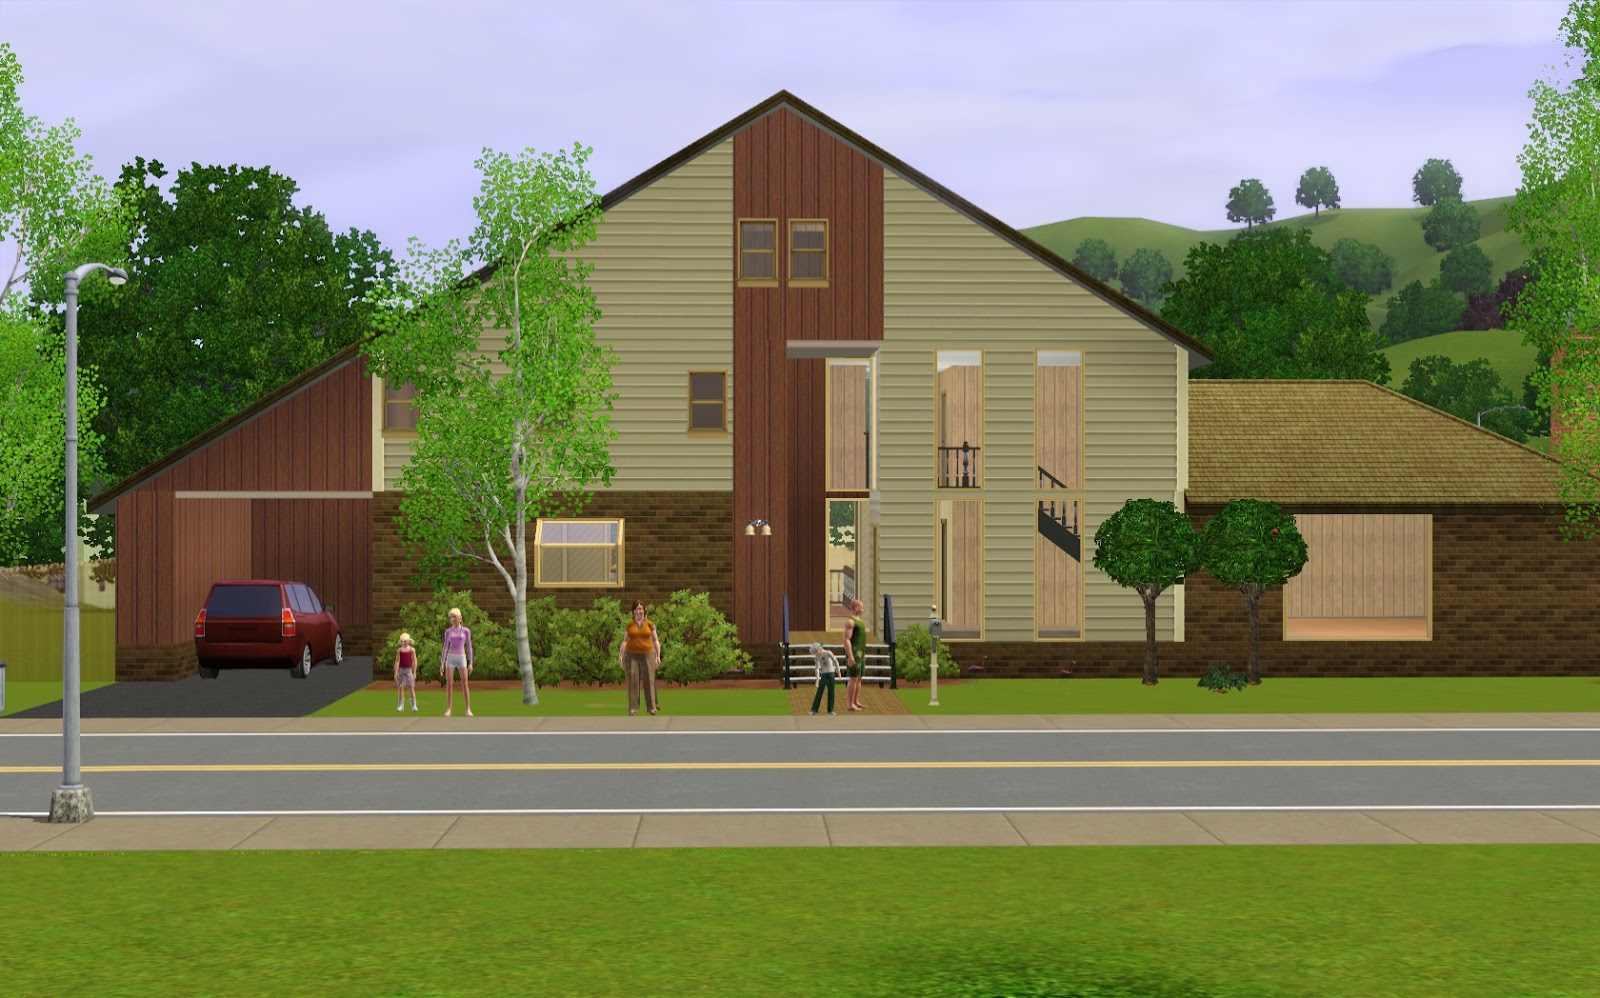 Summer's Little Sims 3 Garden: Sunset Valley (The Sims 3